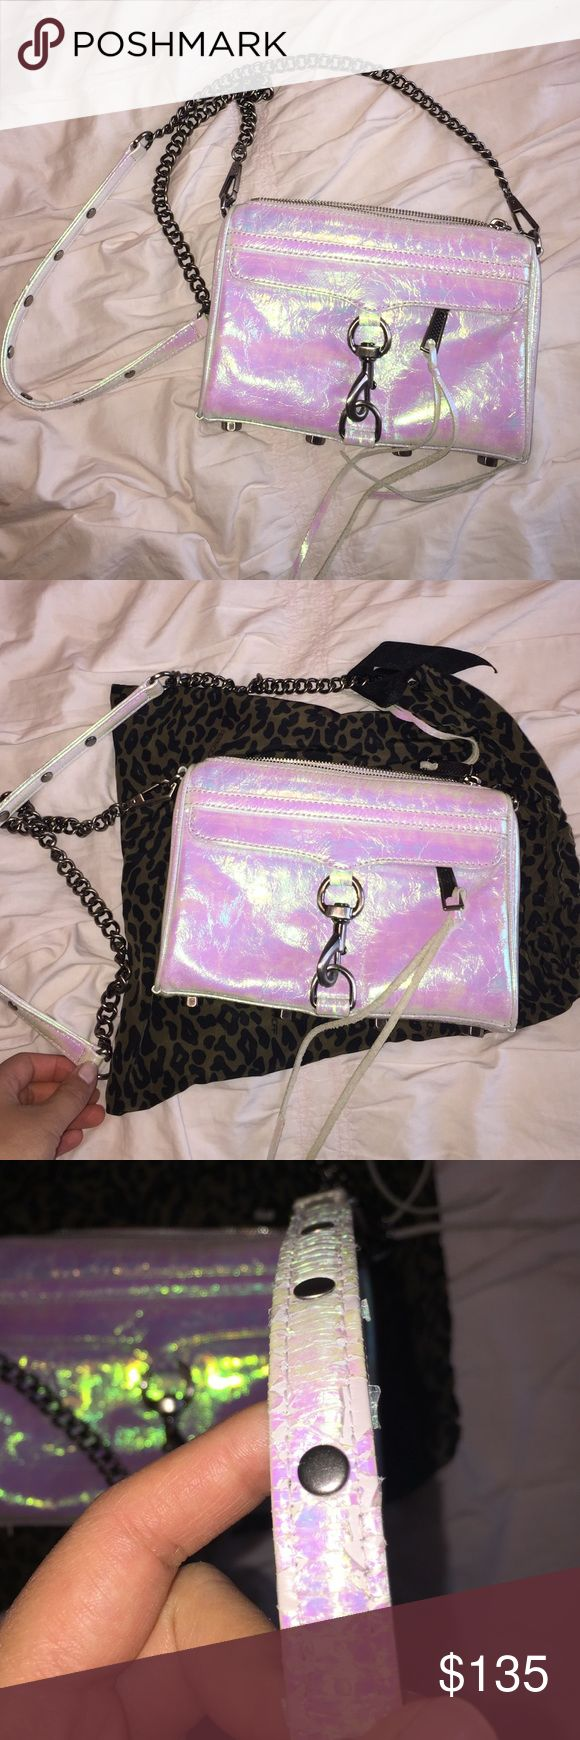 Rebecca Minkoff mini Mac shoulder bag in 🦄 color A rare piece! Perfect for summer. I've only wore it few time, however the hologram color is peeling a little on the shoulder strap, but nothing noticeable. The color is so pretty, you can't find it anywhere! Rebecca Minkoff Bags Shoulder Bags